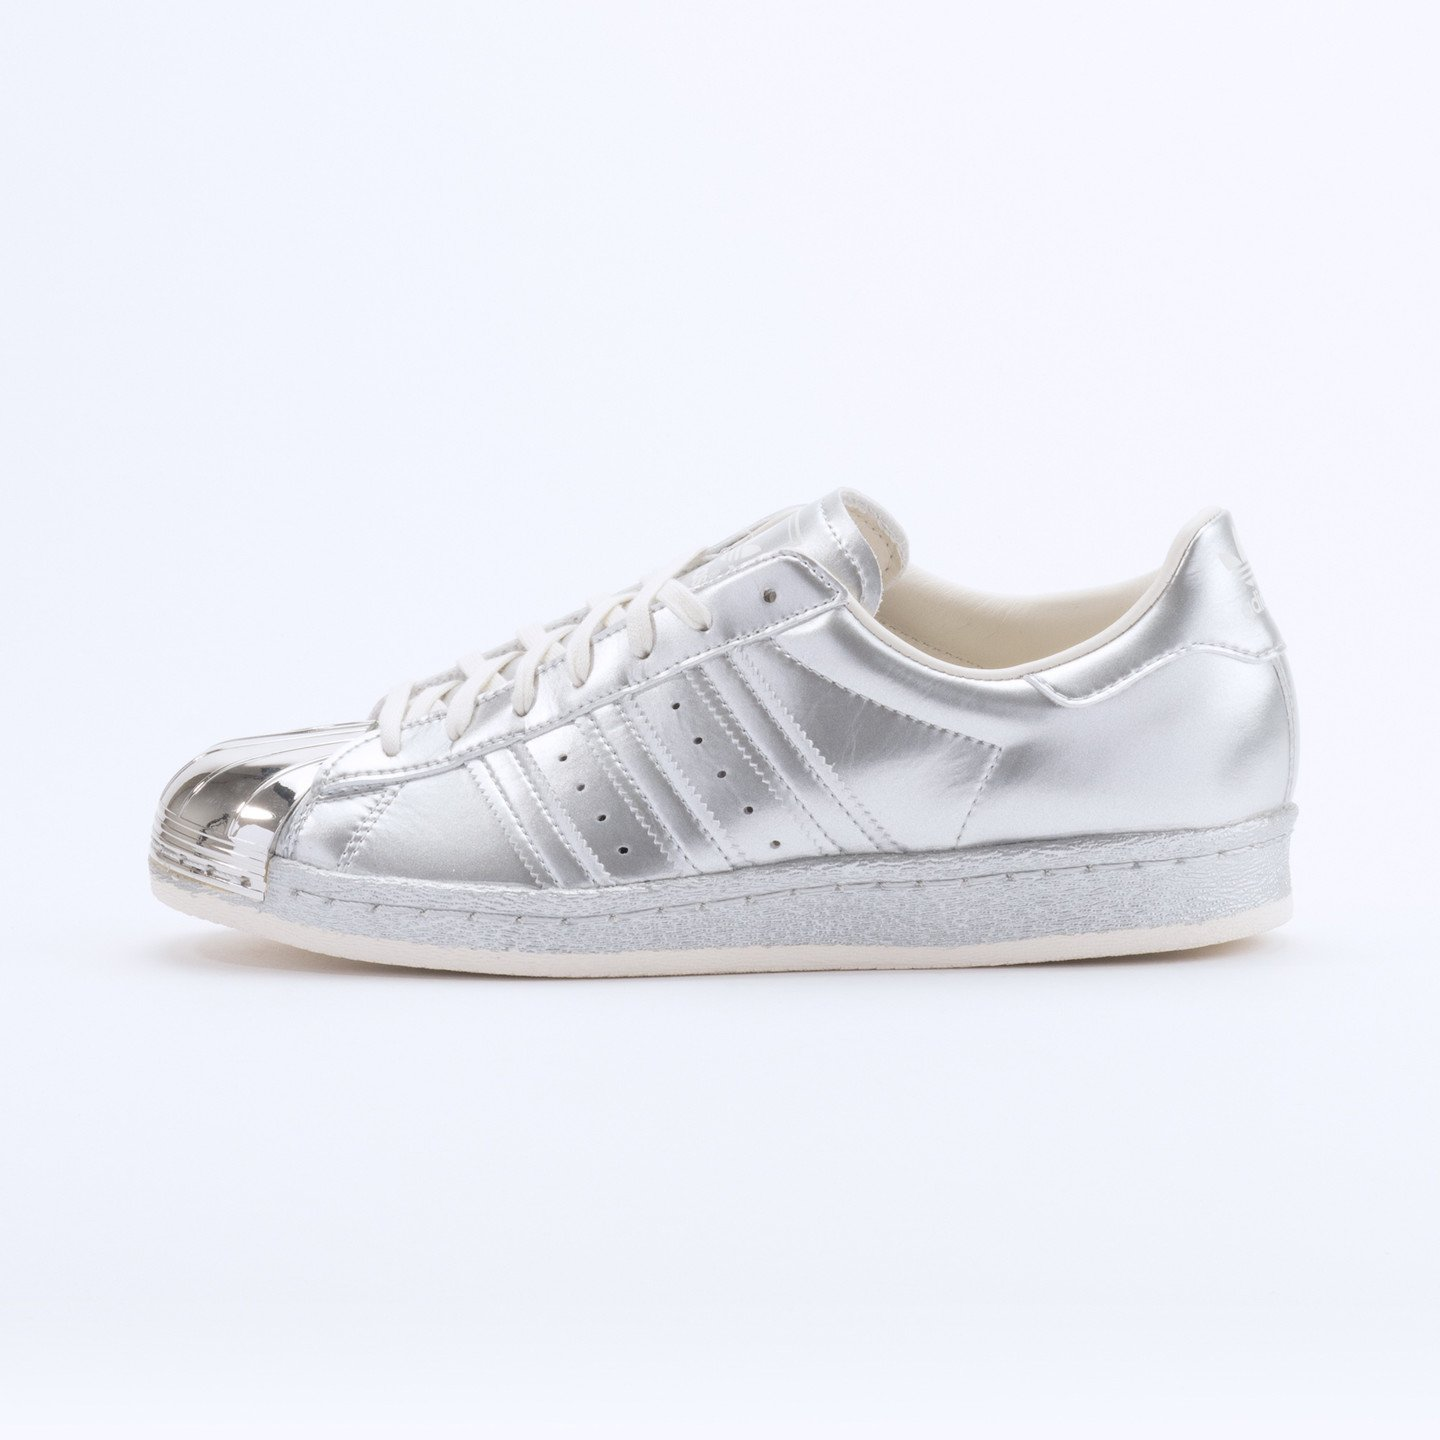 Adidas Superstar 80s Metallic Pack Silver Metallic S82741-40